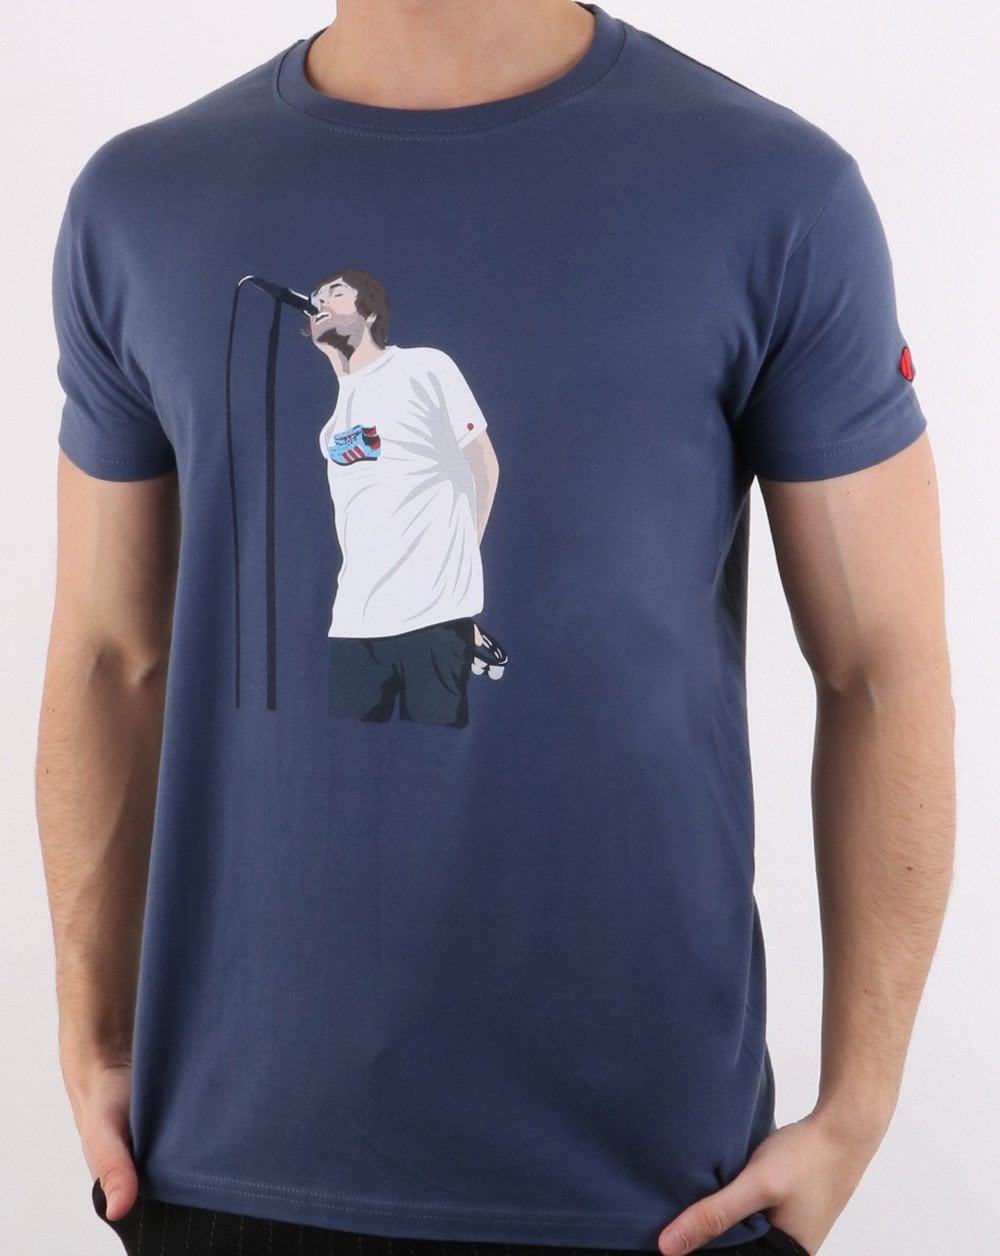 80s Casuals Liam Gallagher t-shirt